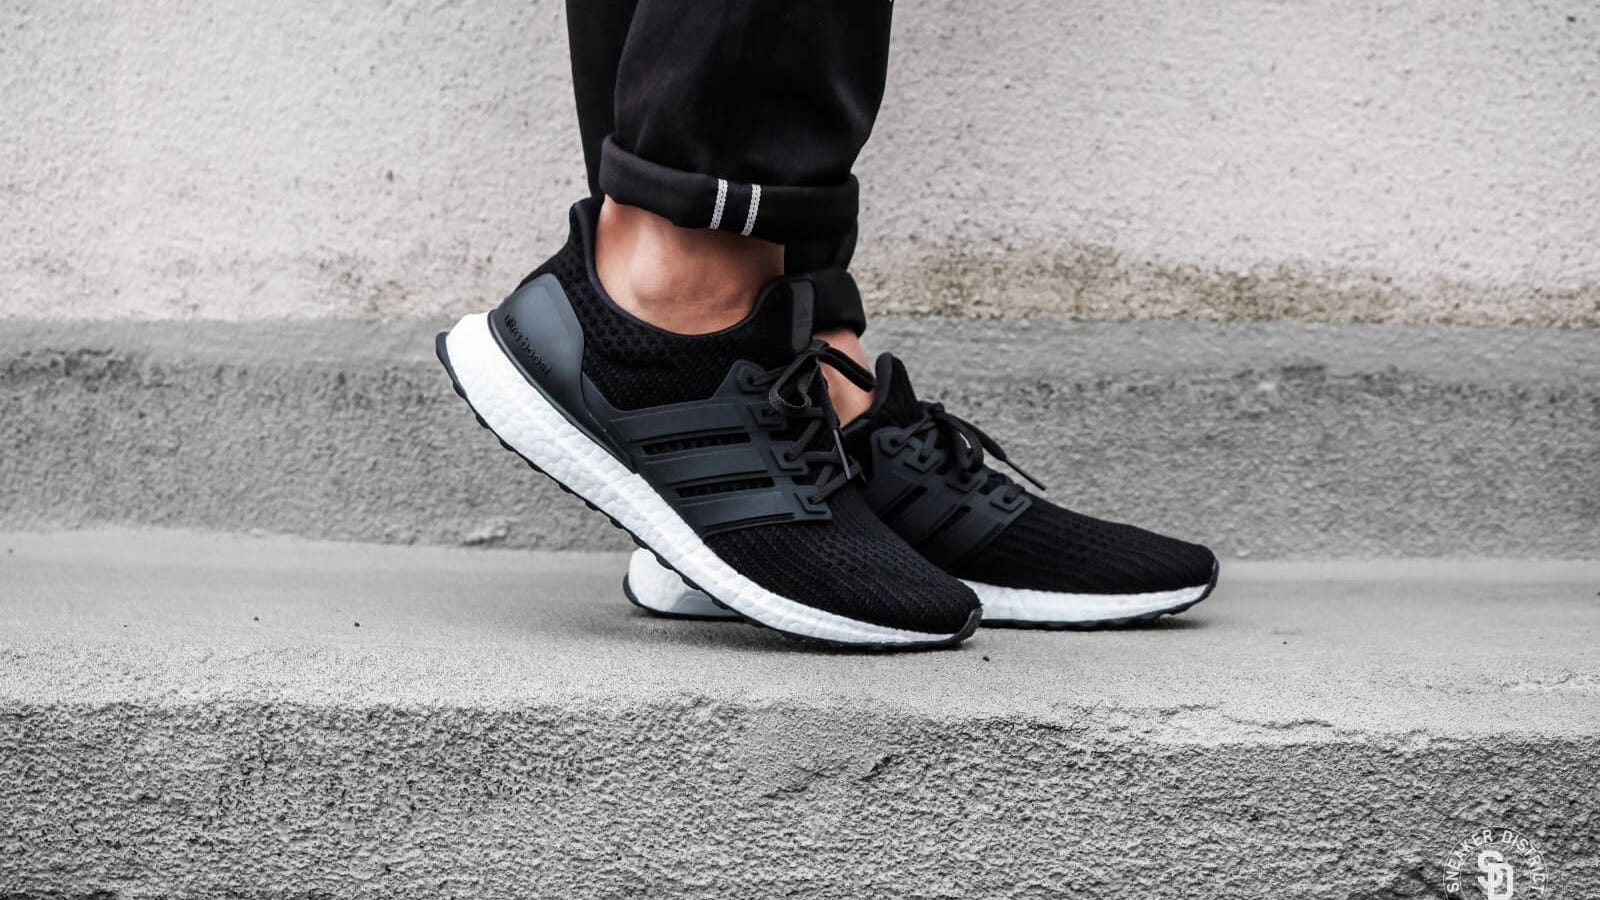 adidas promo code: Get an extra 25% off discounted items with this ...